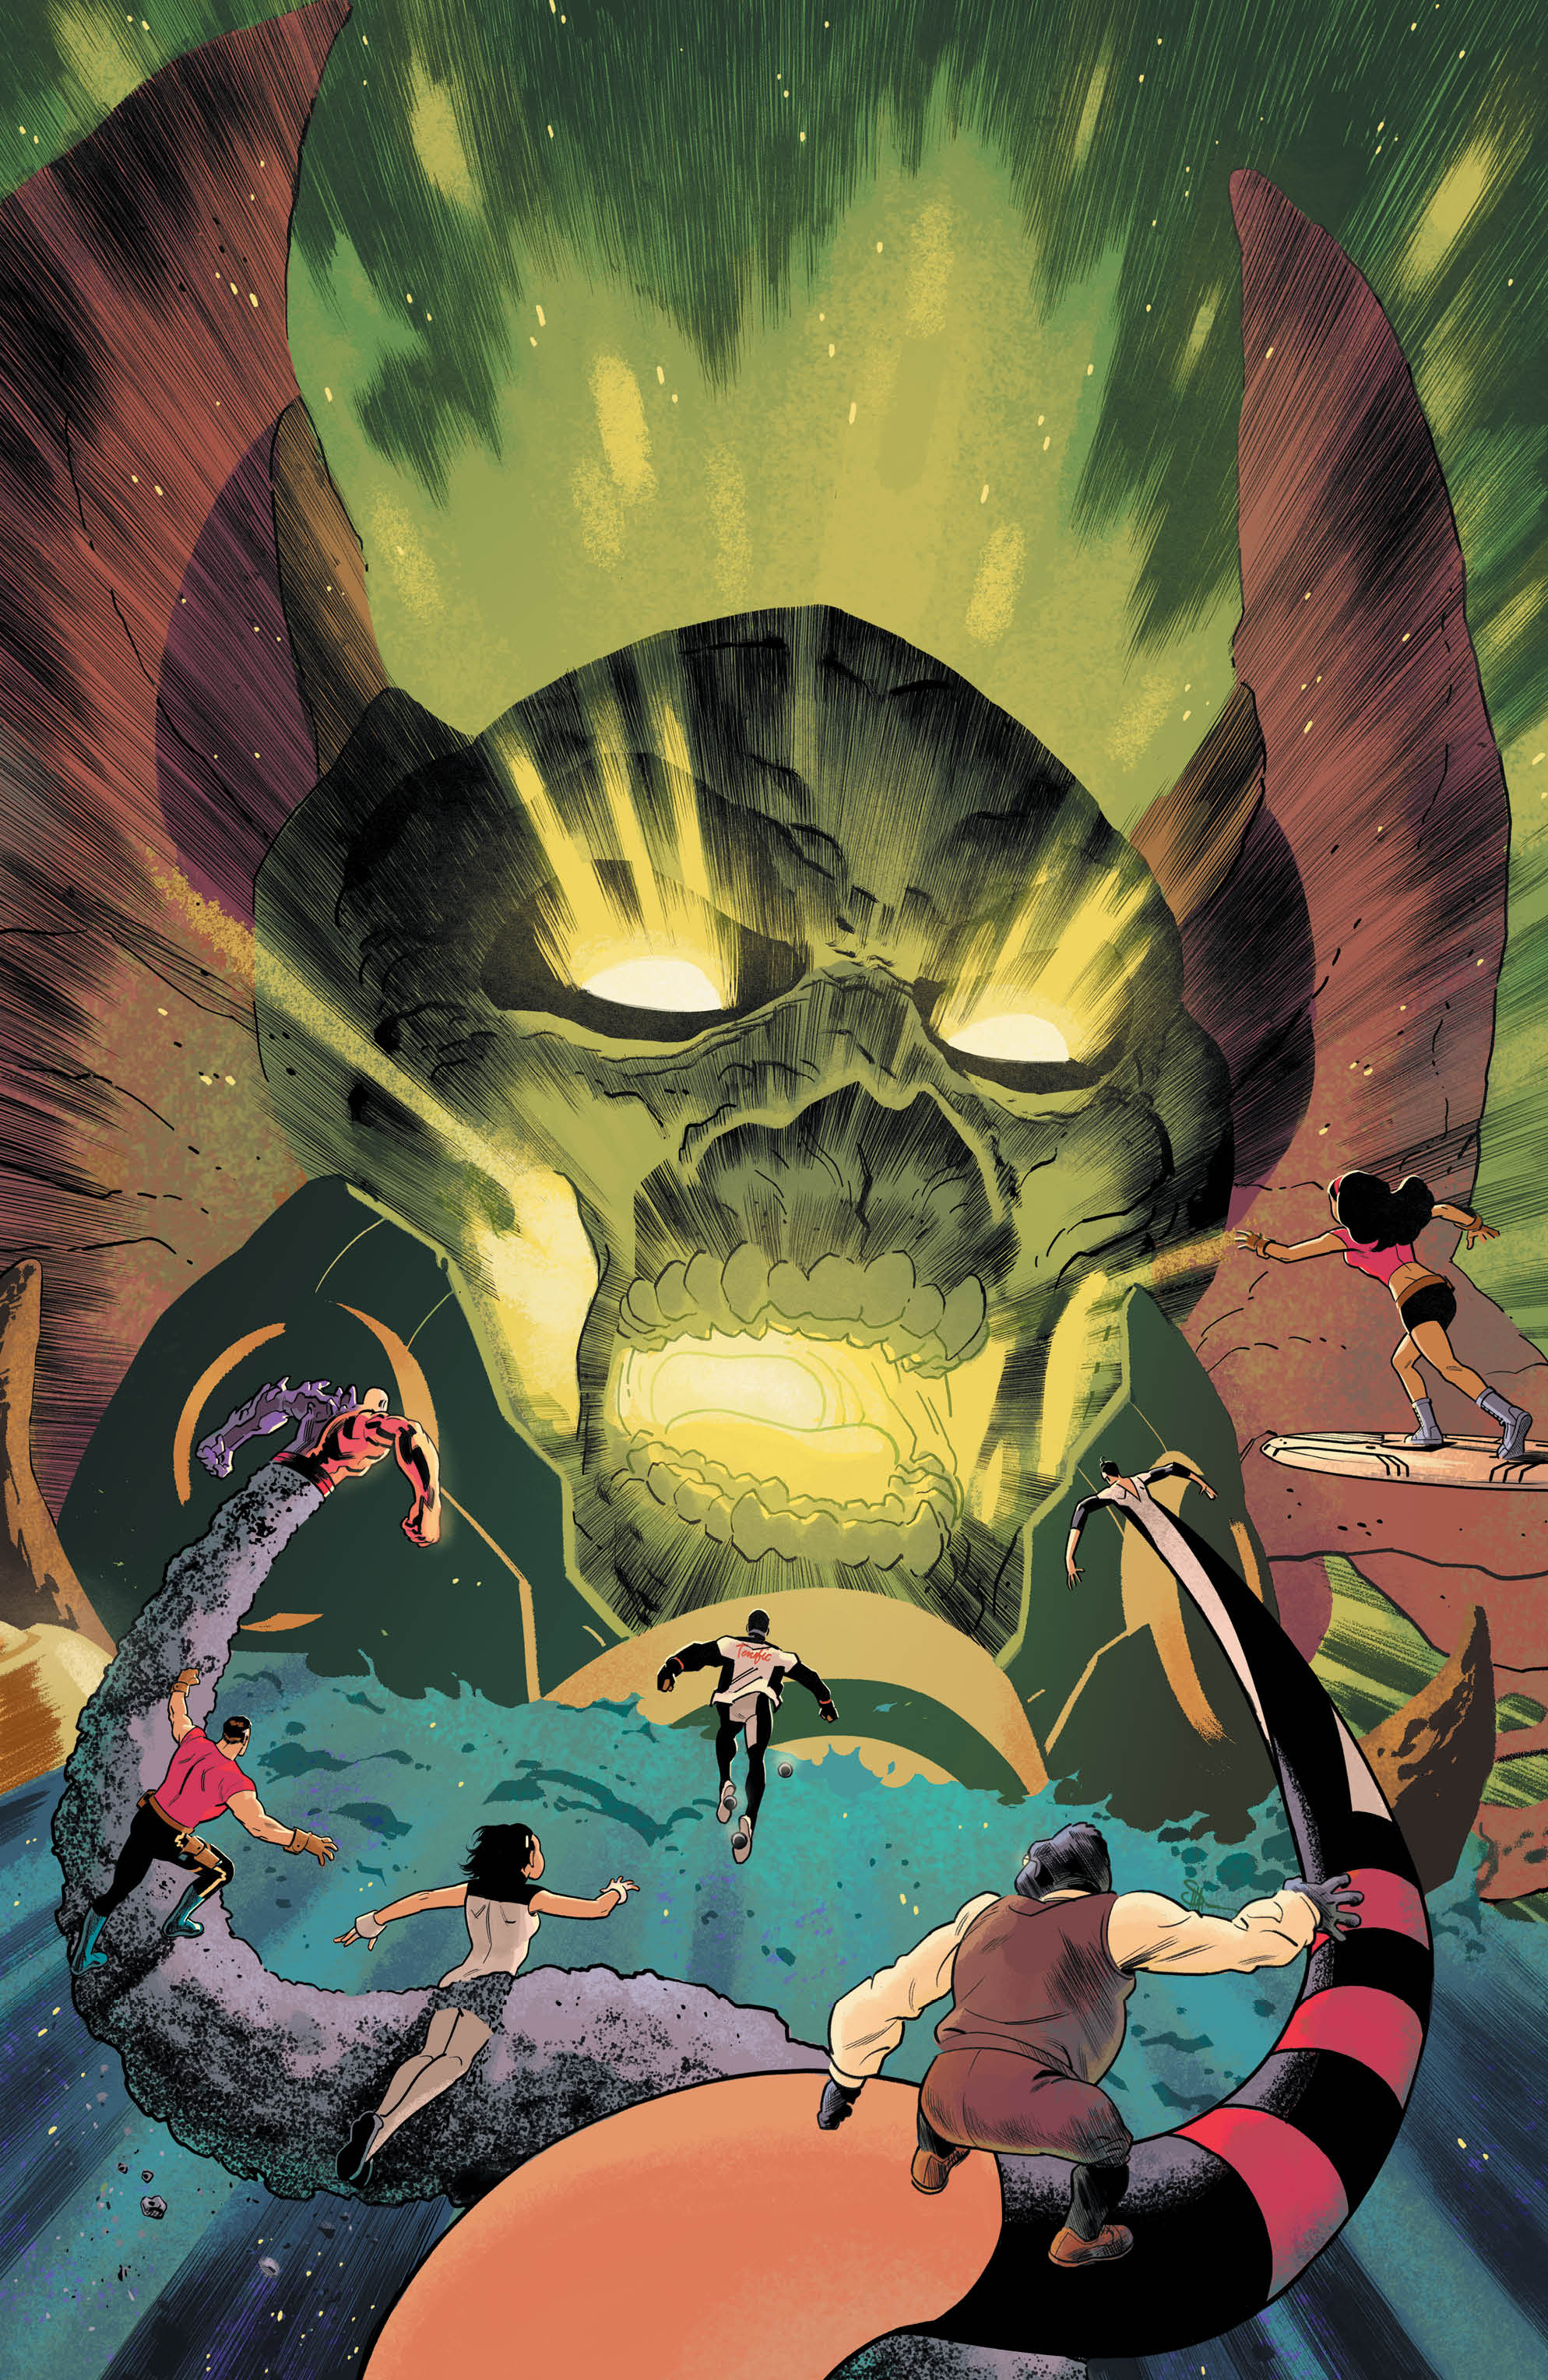 The totally titanic termination titan targeted to take out the Terrifics by the terribly troubled Doctor Dread in this issue of the Terrifics is a terrific call back to the series as a whole.